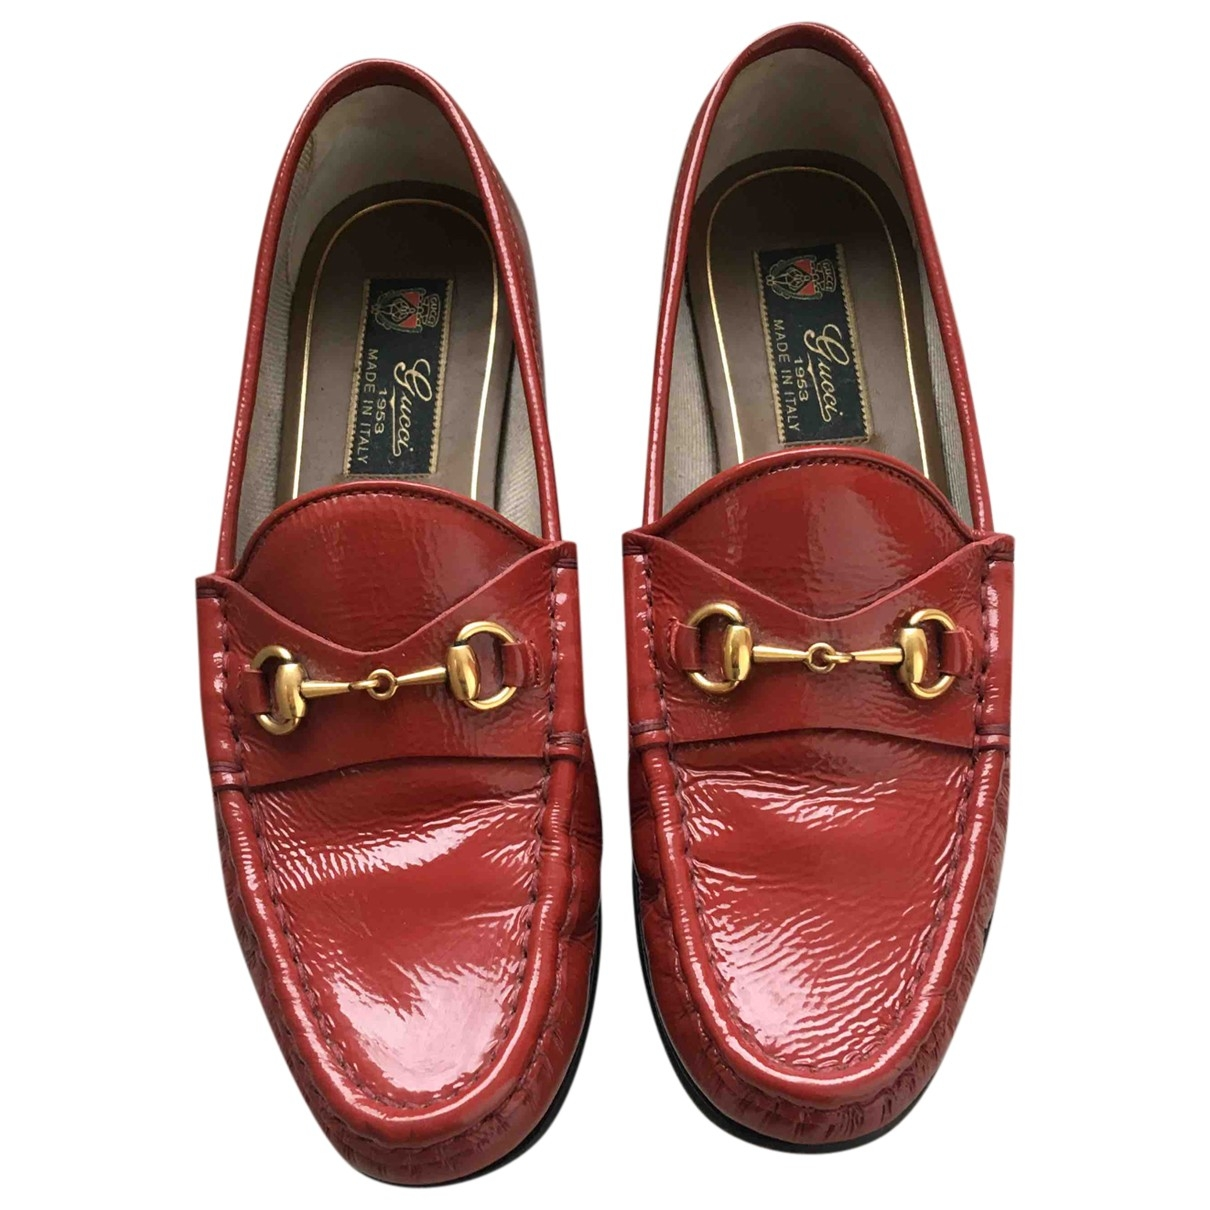 Gucci \N Red Patent leather Flats for Women 36 EU